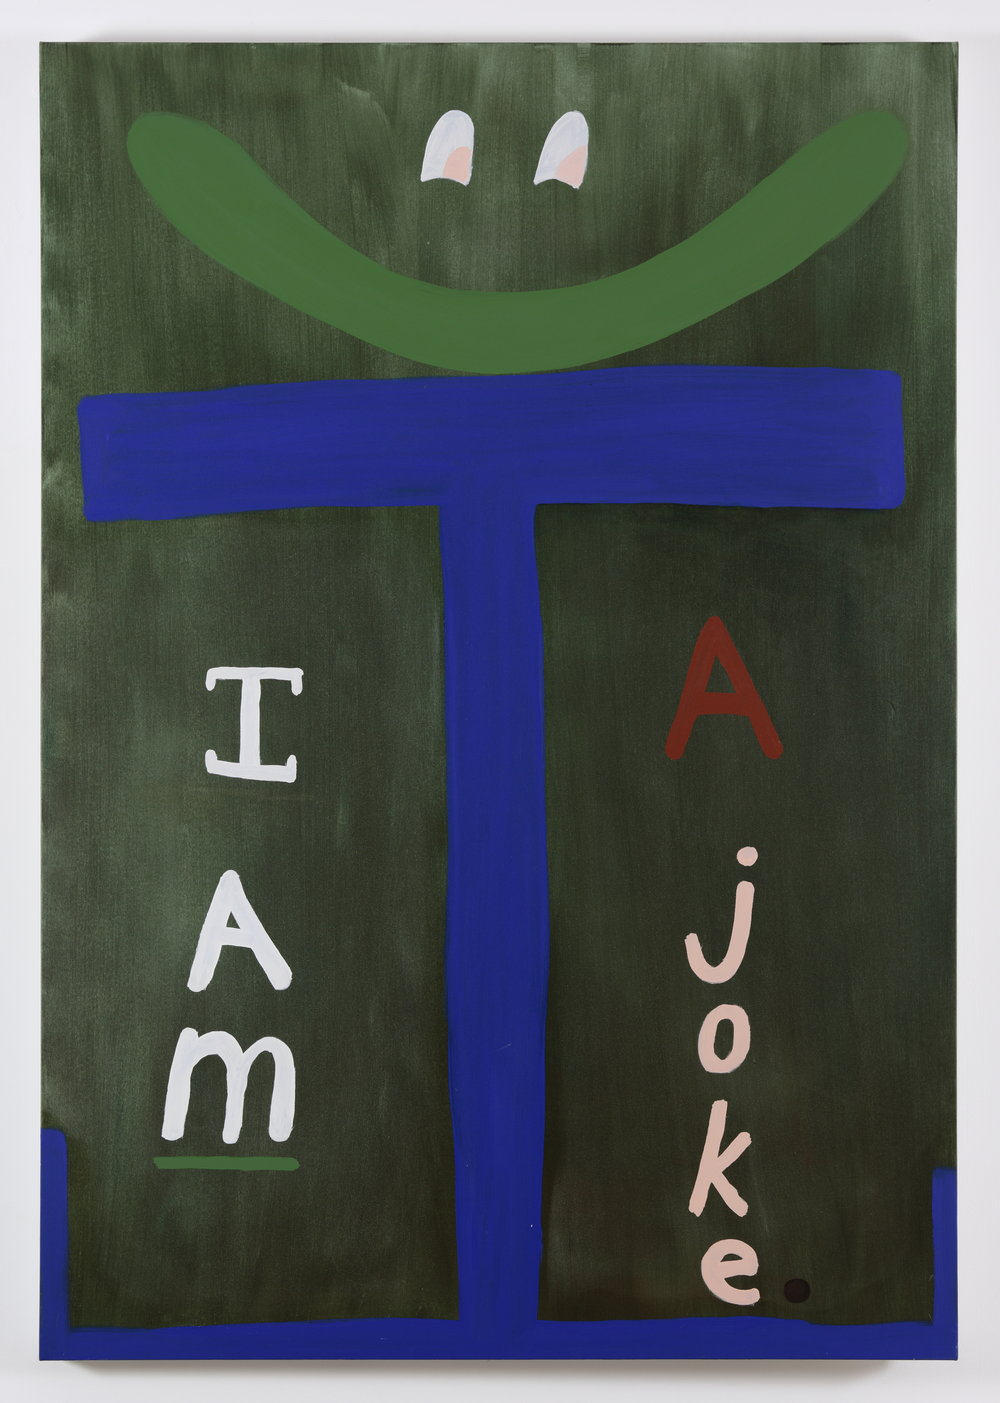 I Am A Joke But At Least I'm Not You   2017  Oil on canvas  170 x 120 cm  Photo by Tim Gresham